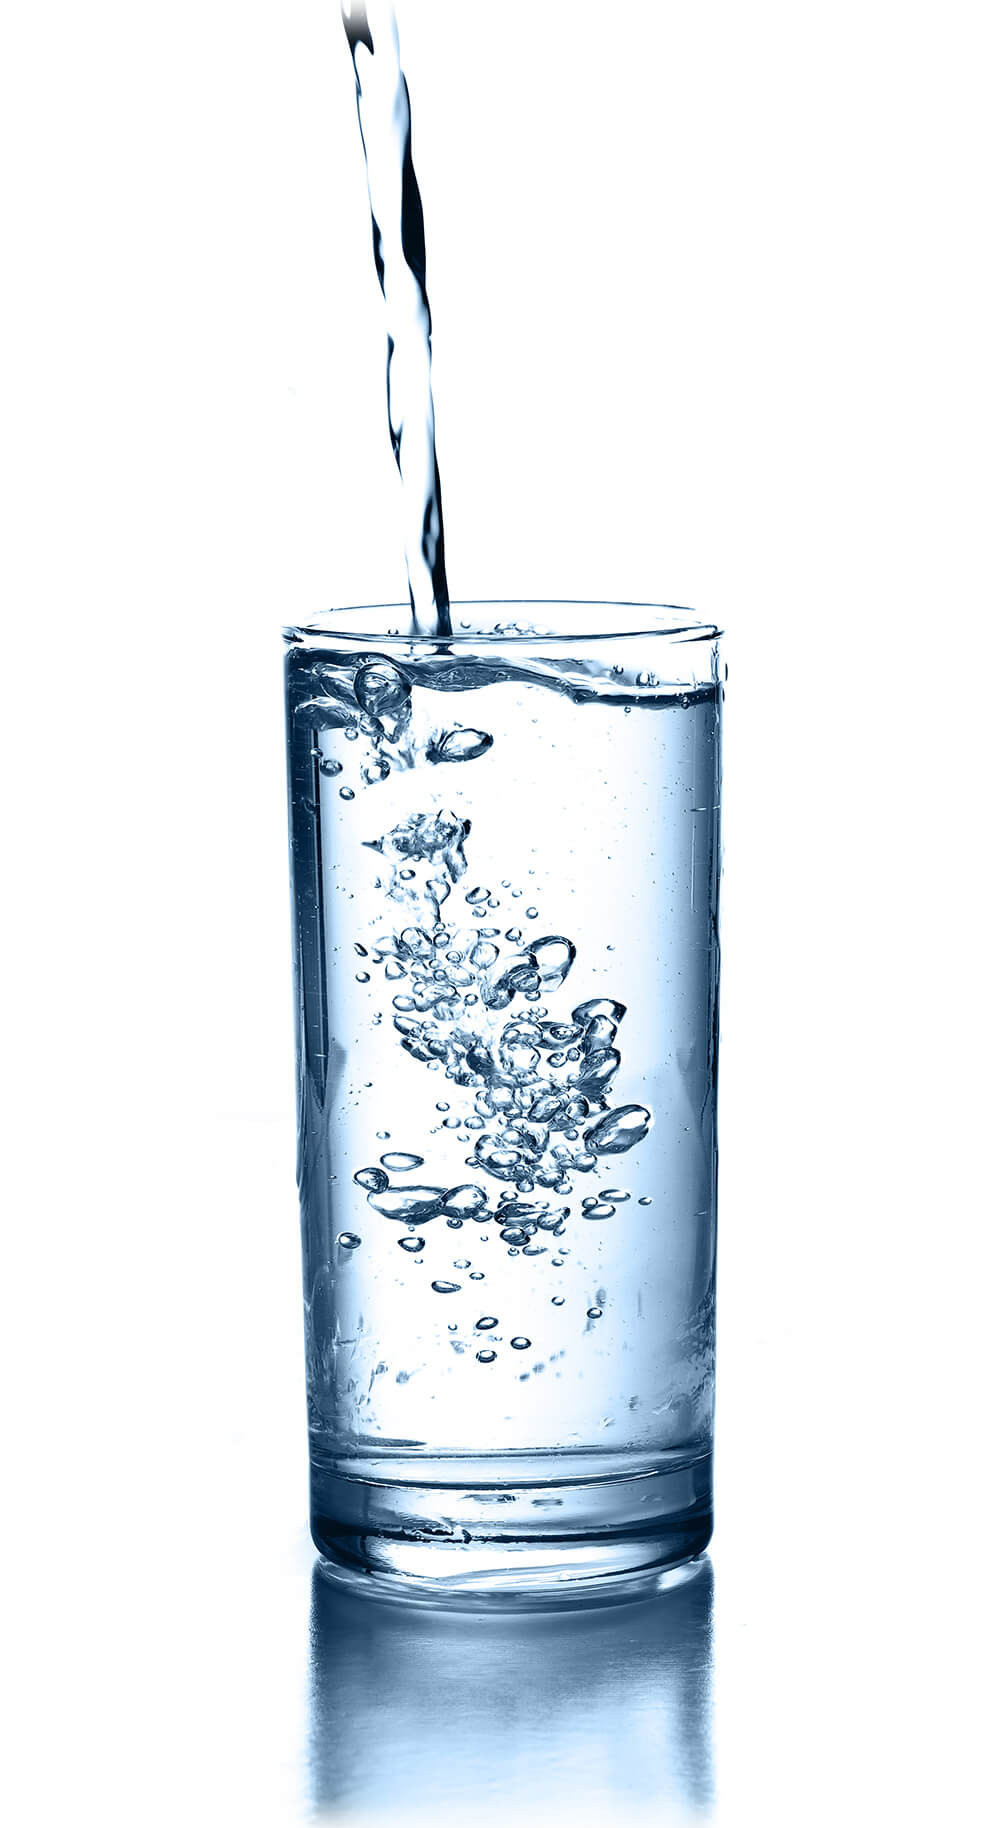 Why drinking water is good for you